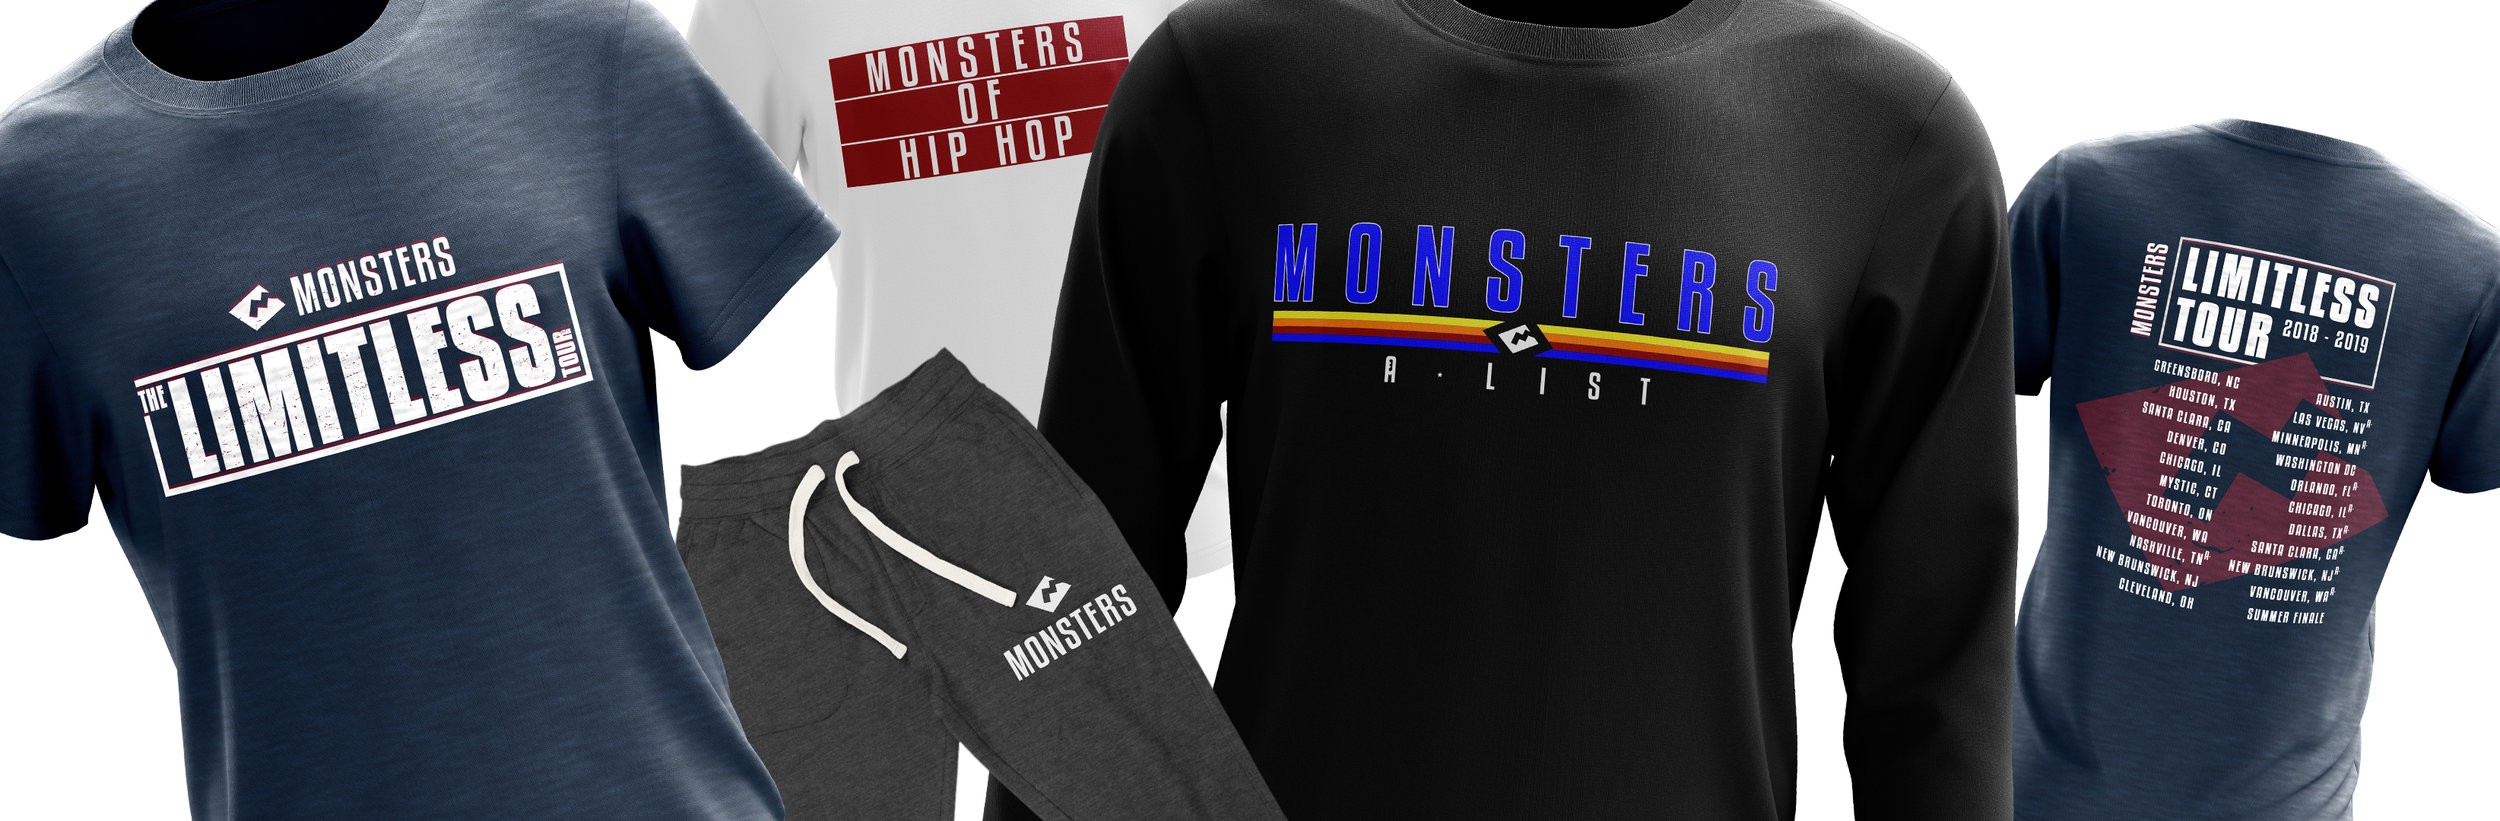 monstersmerch.jpg